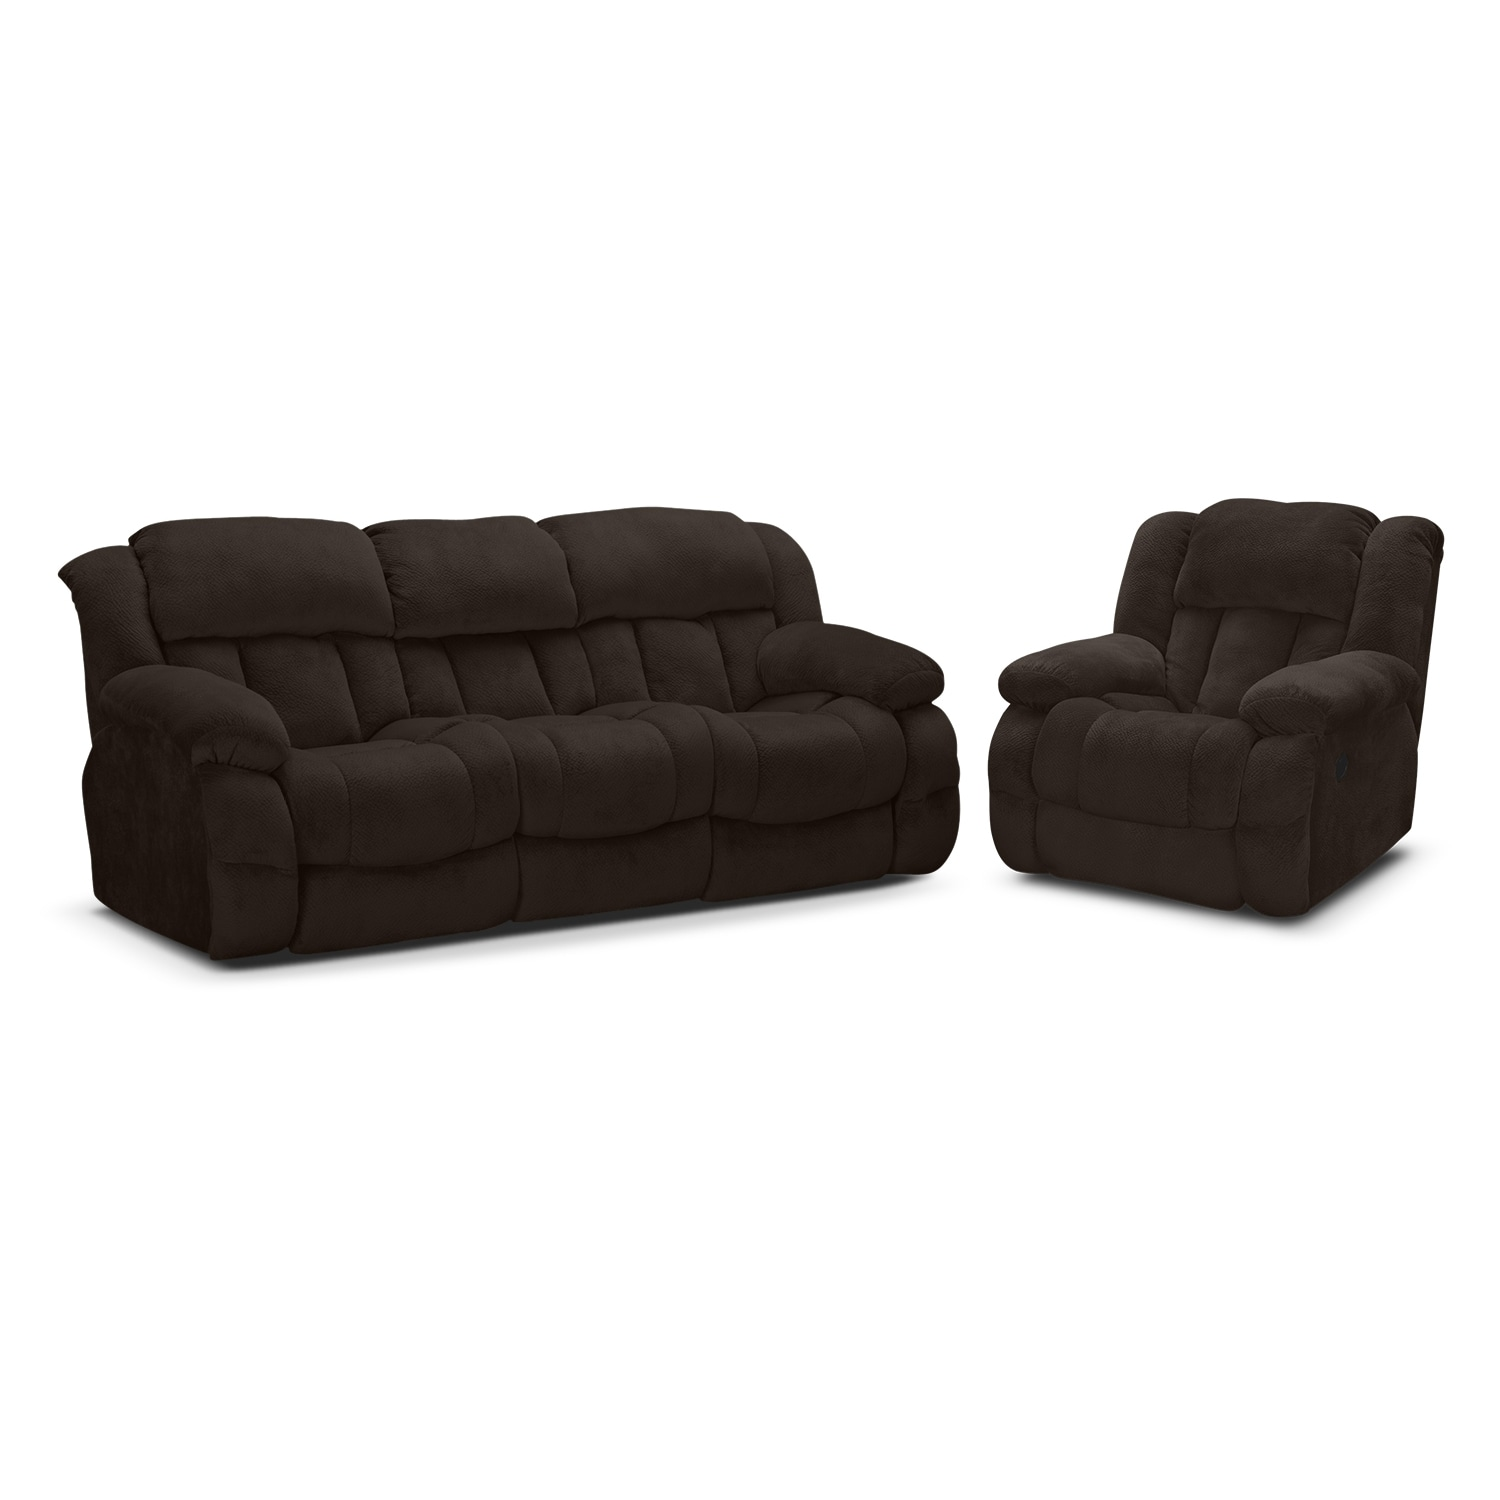 Park City Dual Reclining Sofa and Glider Recliner Set - Chocolate